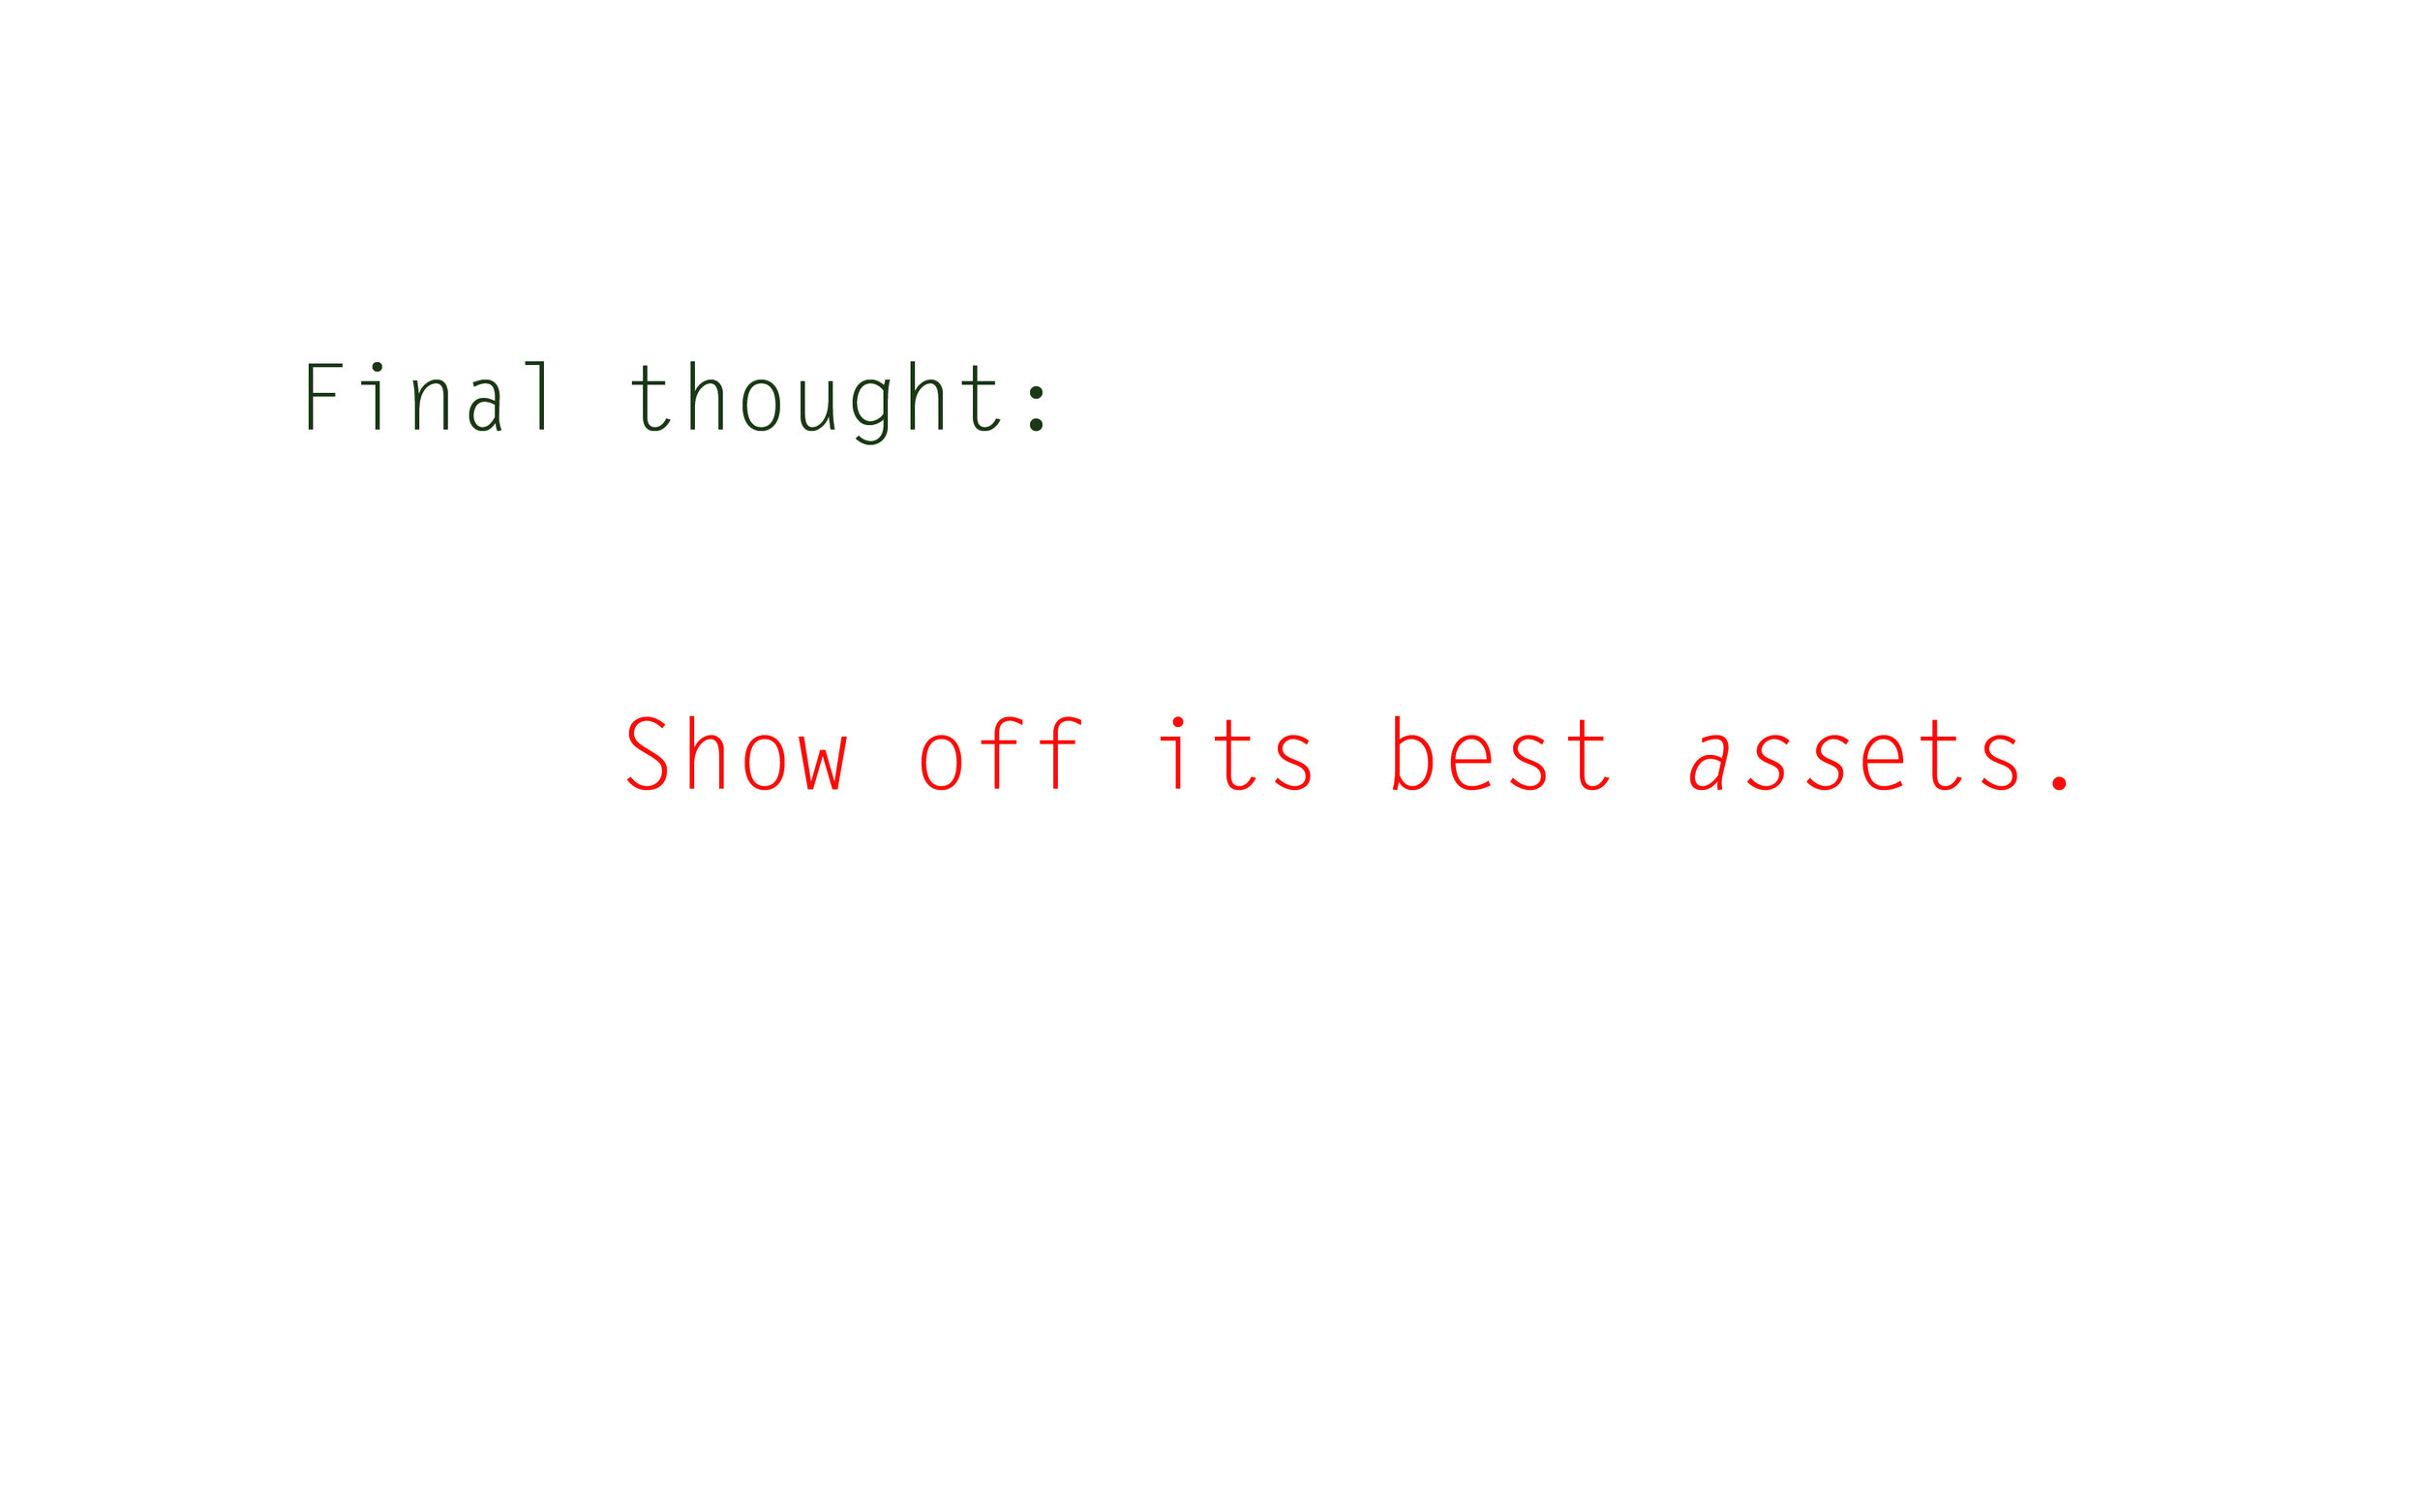 ticonthoughts-02.jpg